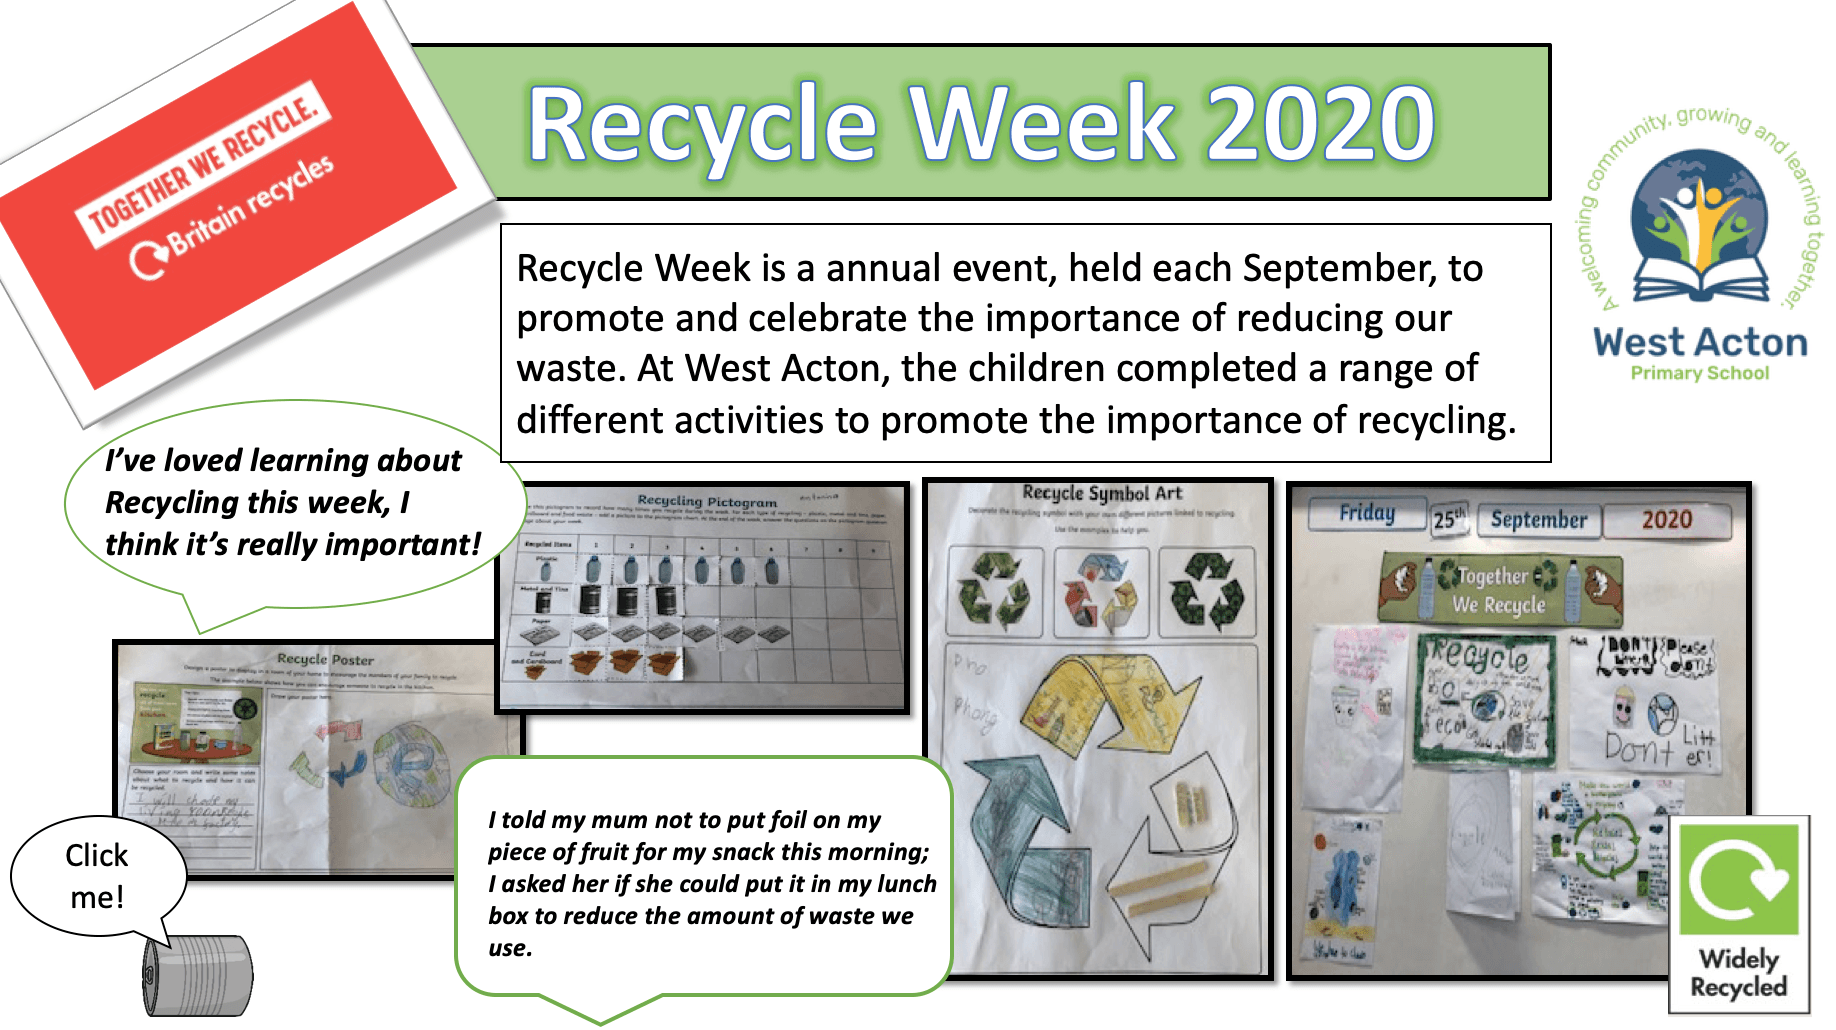 Recycling Week 2020